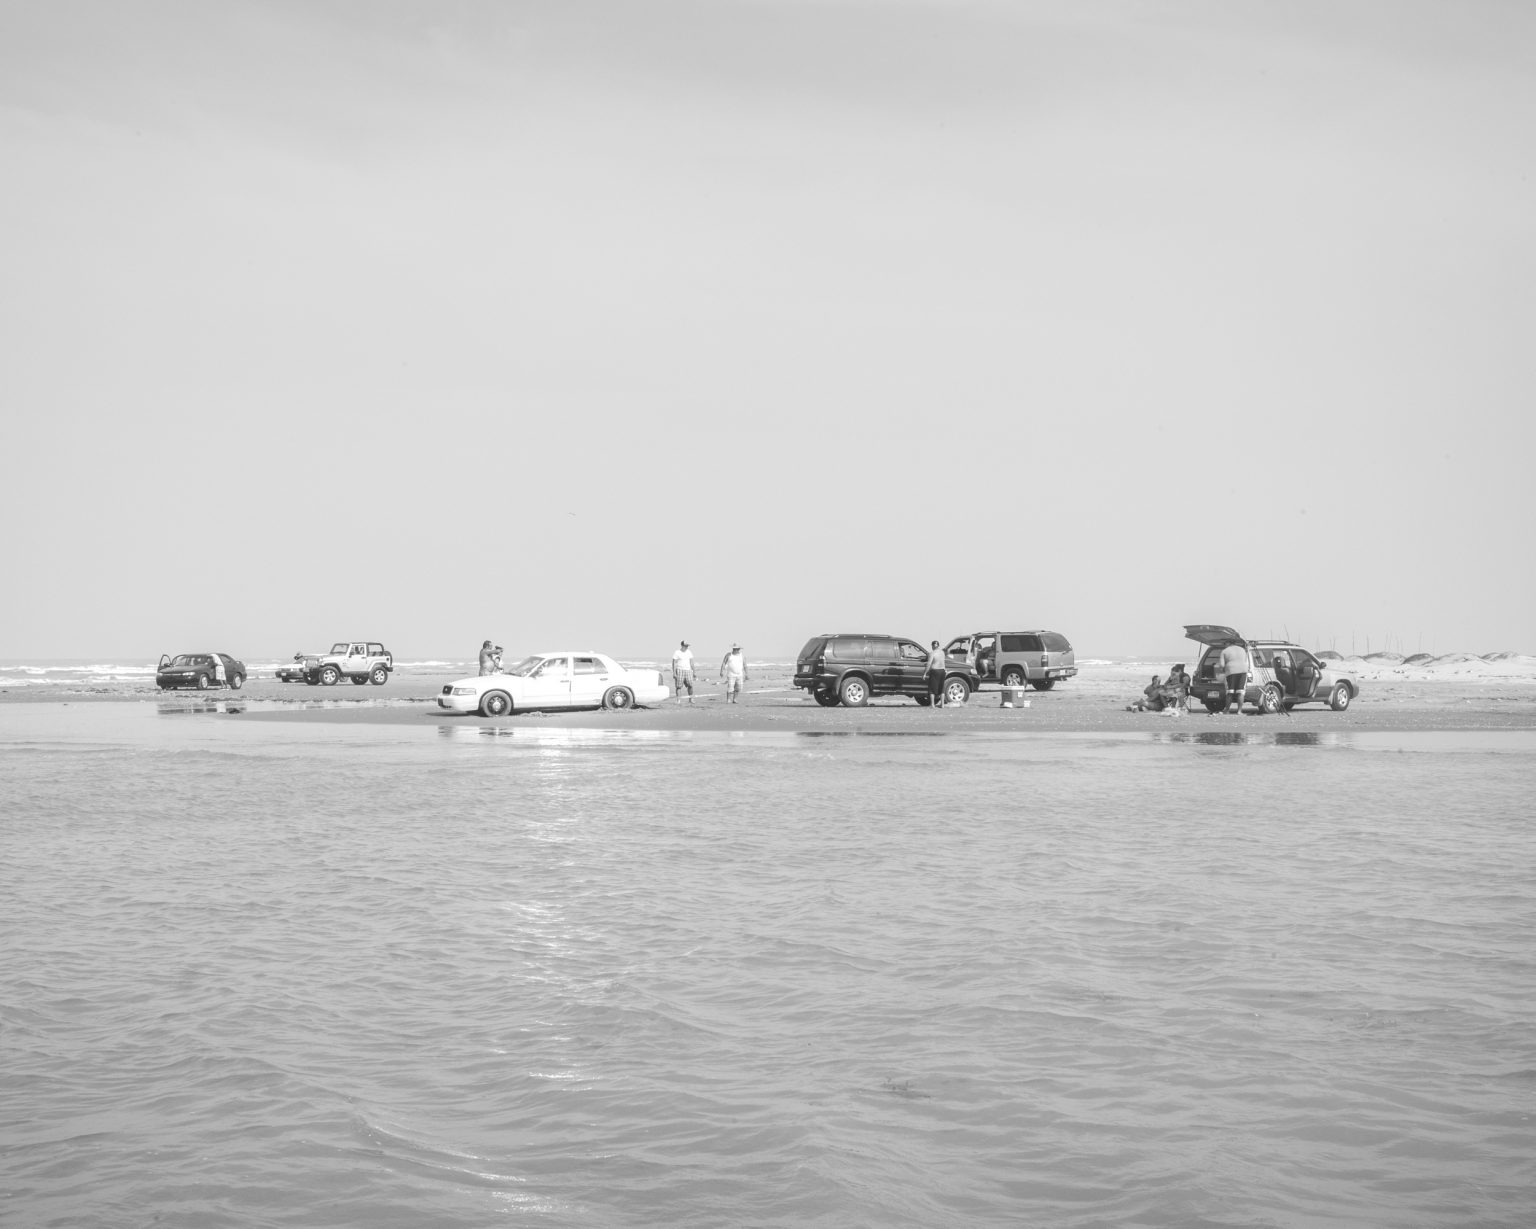 Families along the Rio Grande's delta where Mexican families go to meet their relatives on the US  bank of the river.  Playa Baghdad. Brownsville, TX. April 2017.